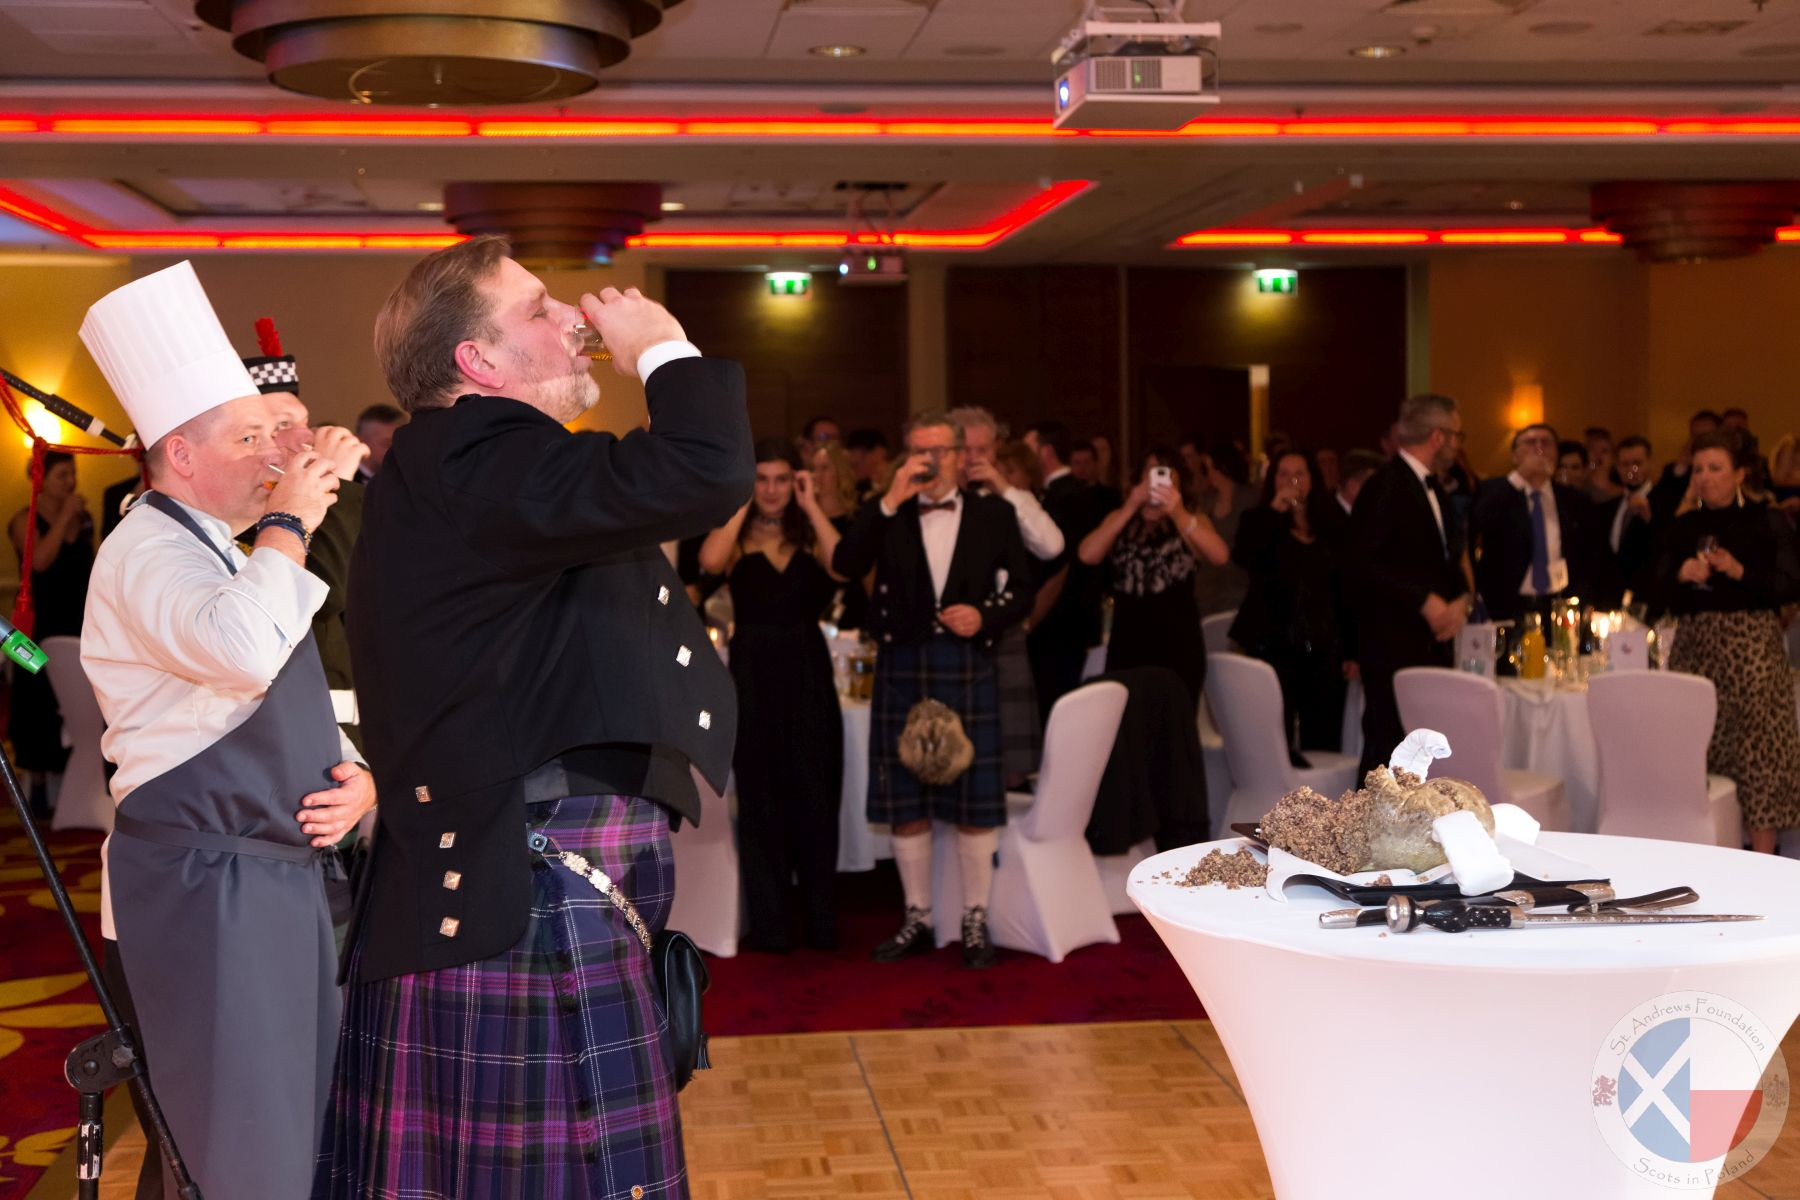 A wee dram to toast the Guest of Honour